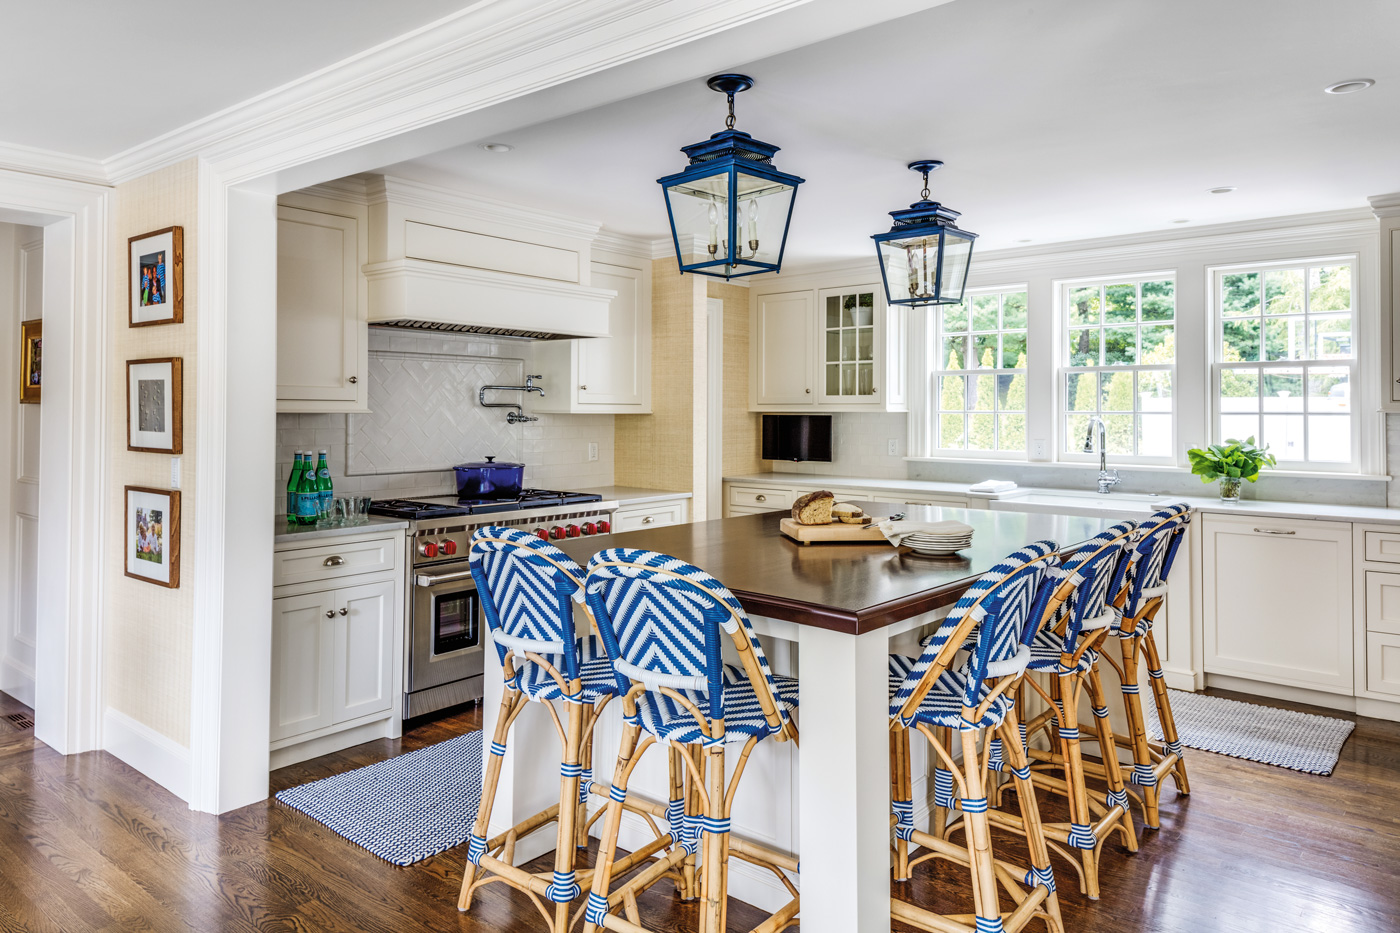 Custom kitchen renovation for a high-end suburban Boston home.